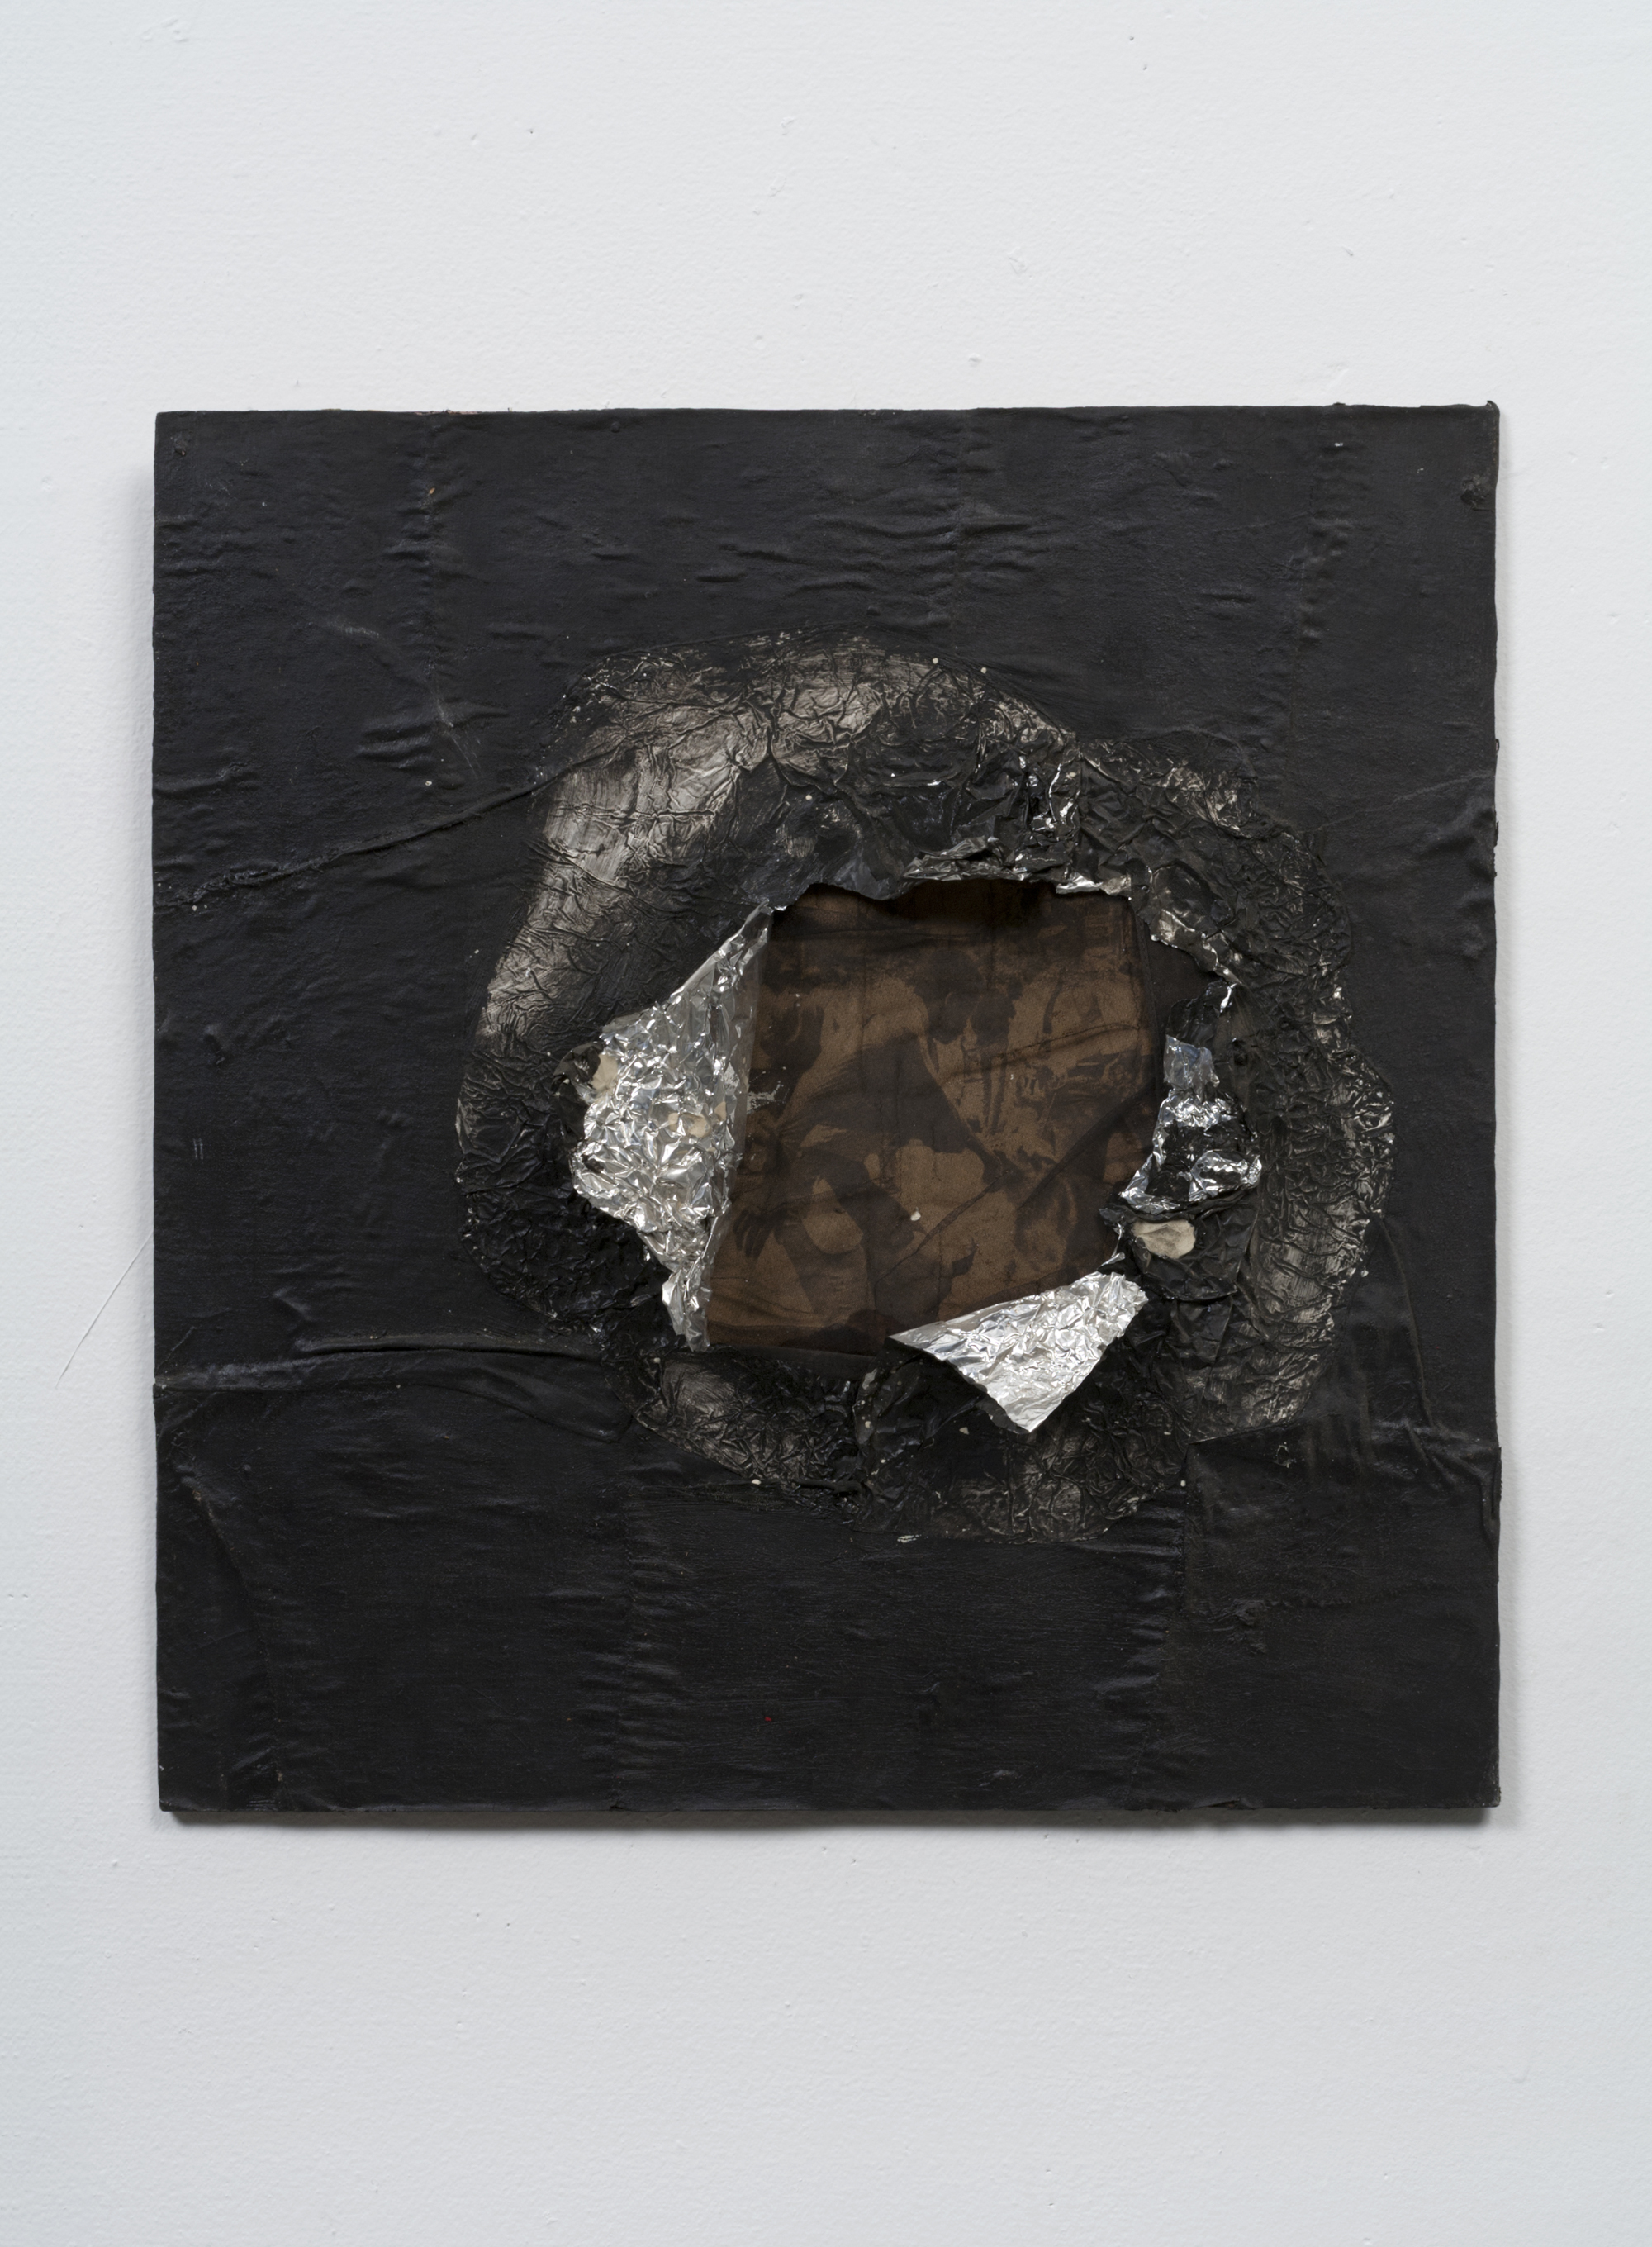 Jack Whitten, Birmingham, 1964. Aluminum foil, newsprint, stocking, and oil on plywood 16 5/8 x 16 in (42.2 x 40.6 cm). Collection Joel Wachs. © Courtesy the Jack Whitten Estate and Hauser & Wirth